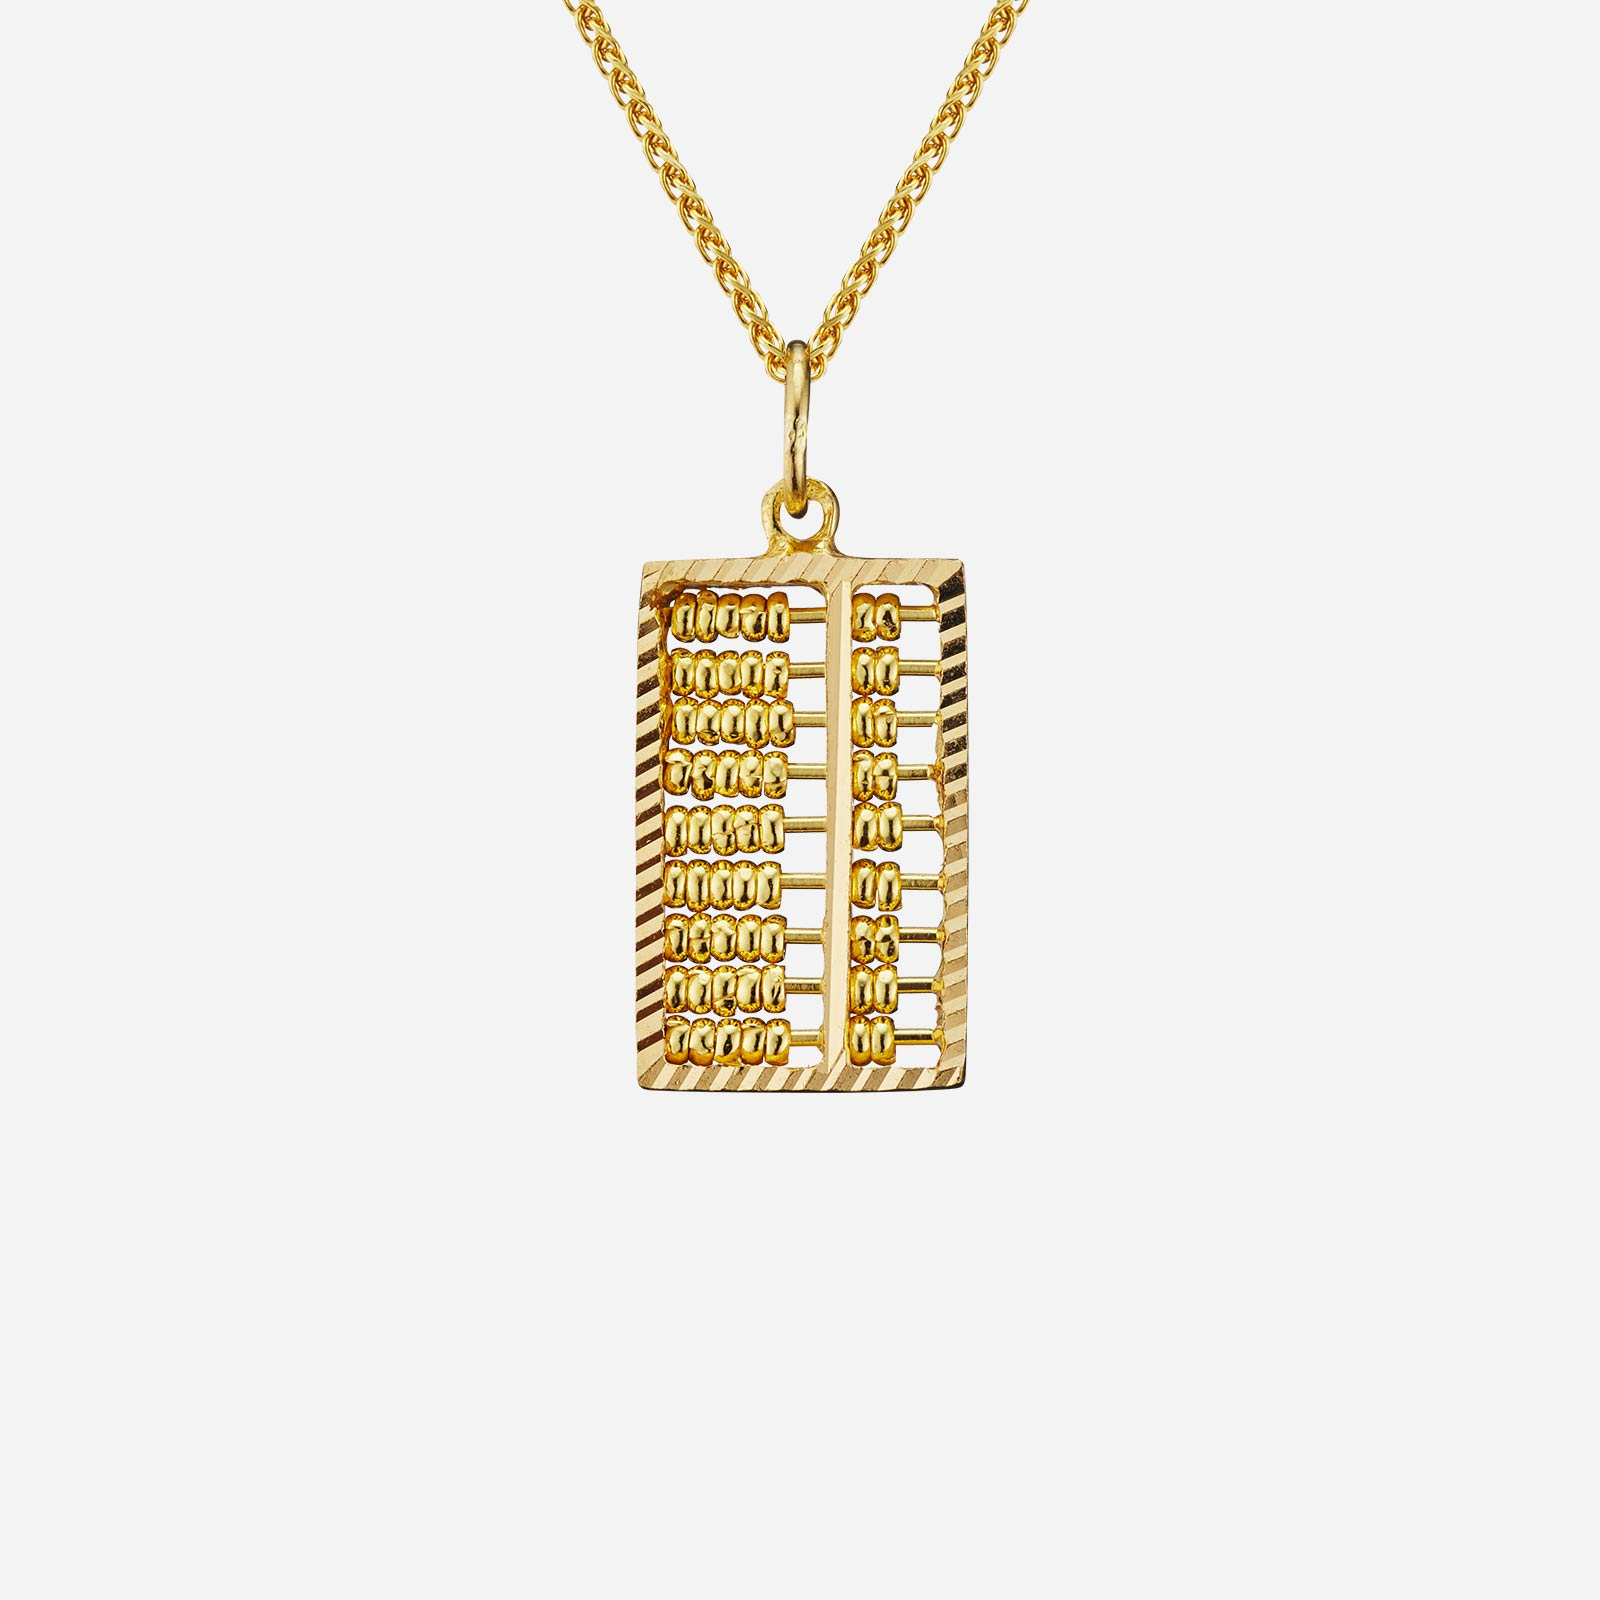 Abacus Pendant (21.5mm)